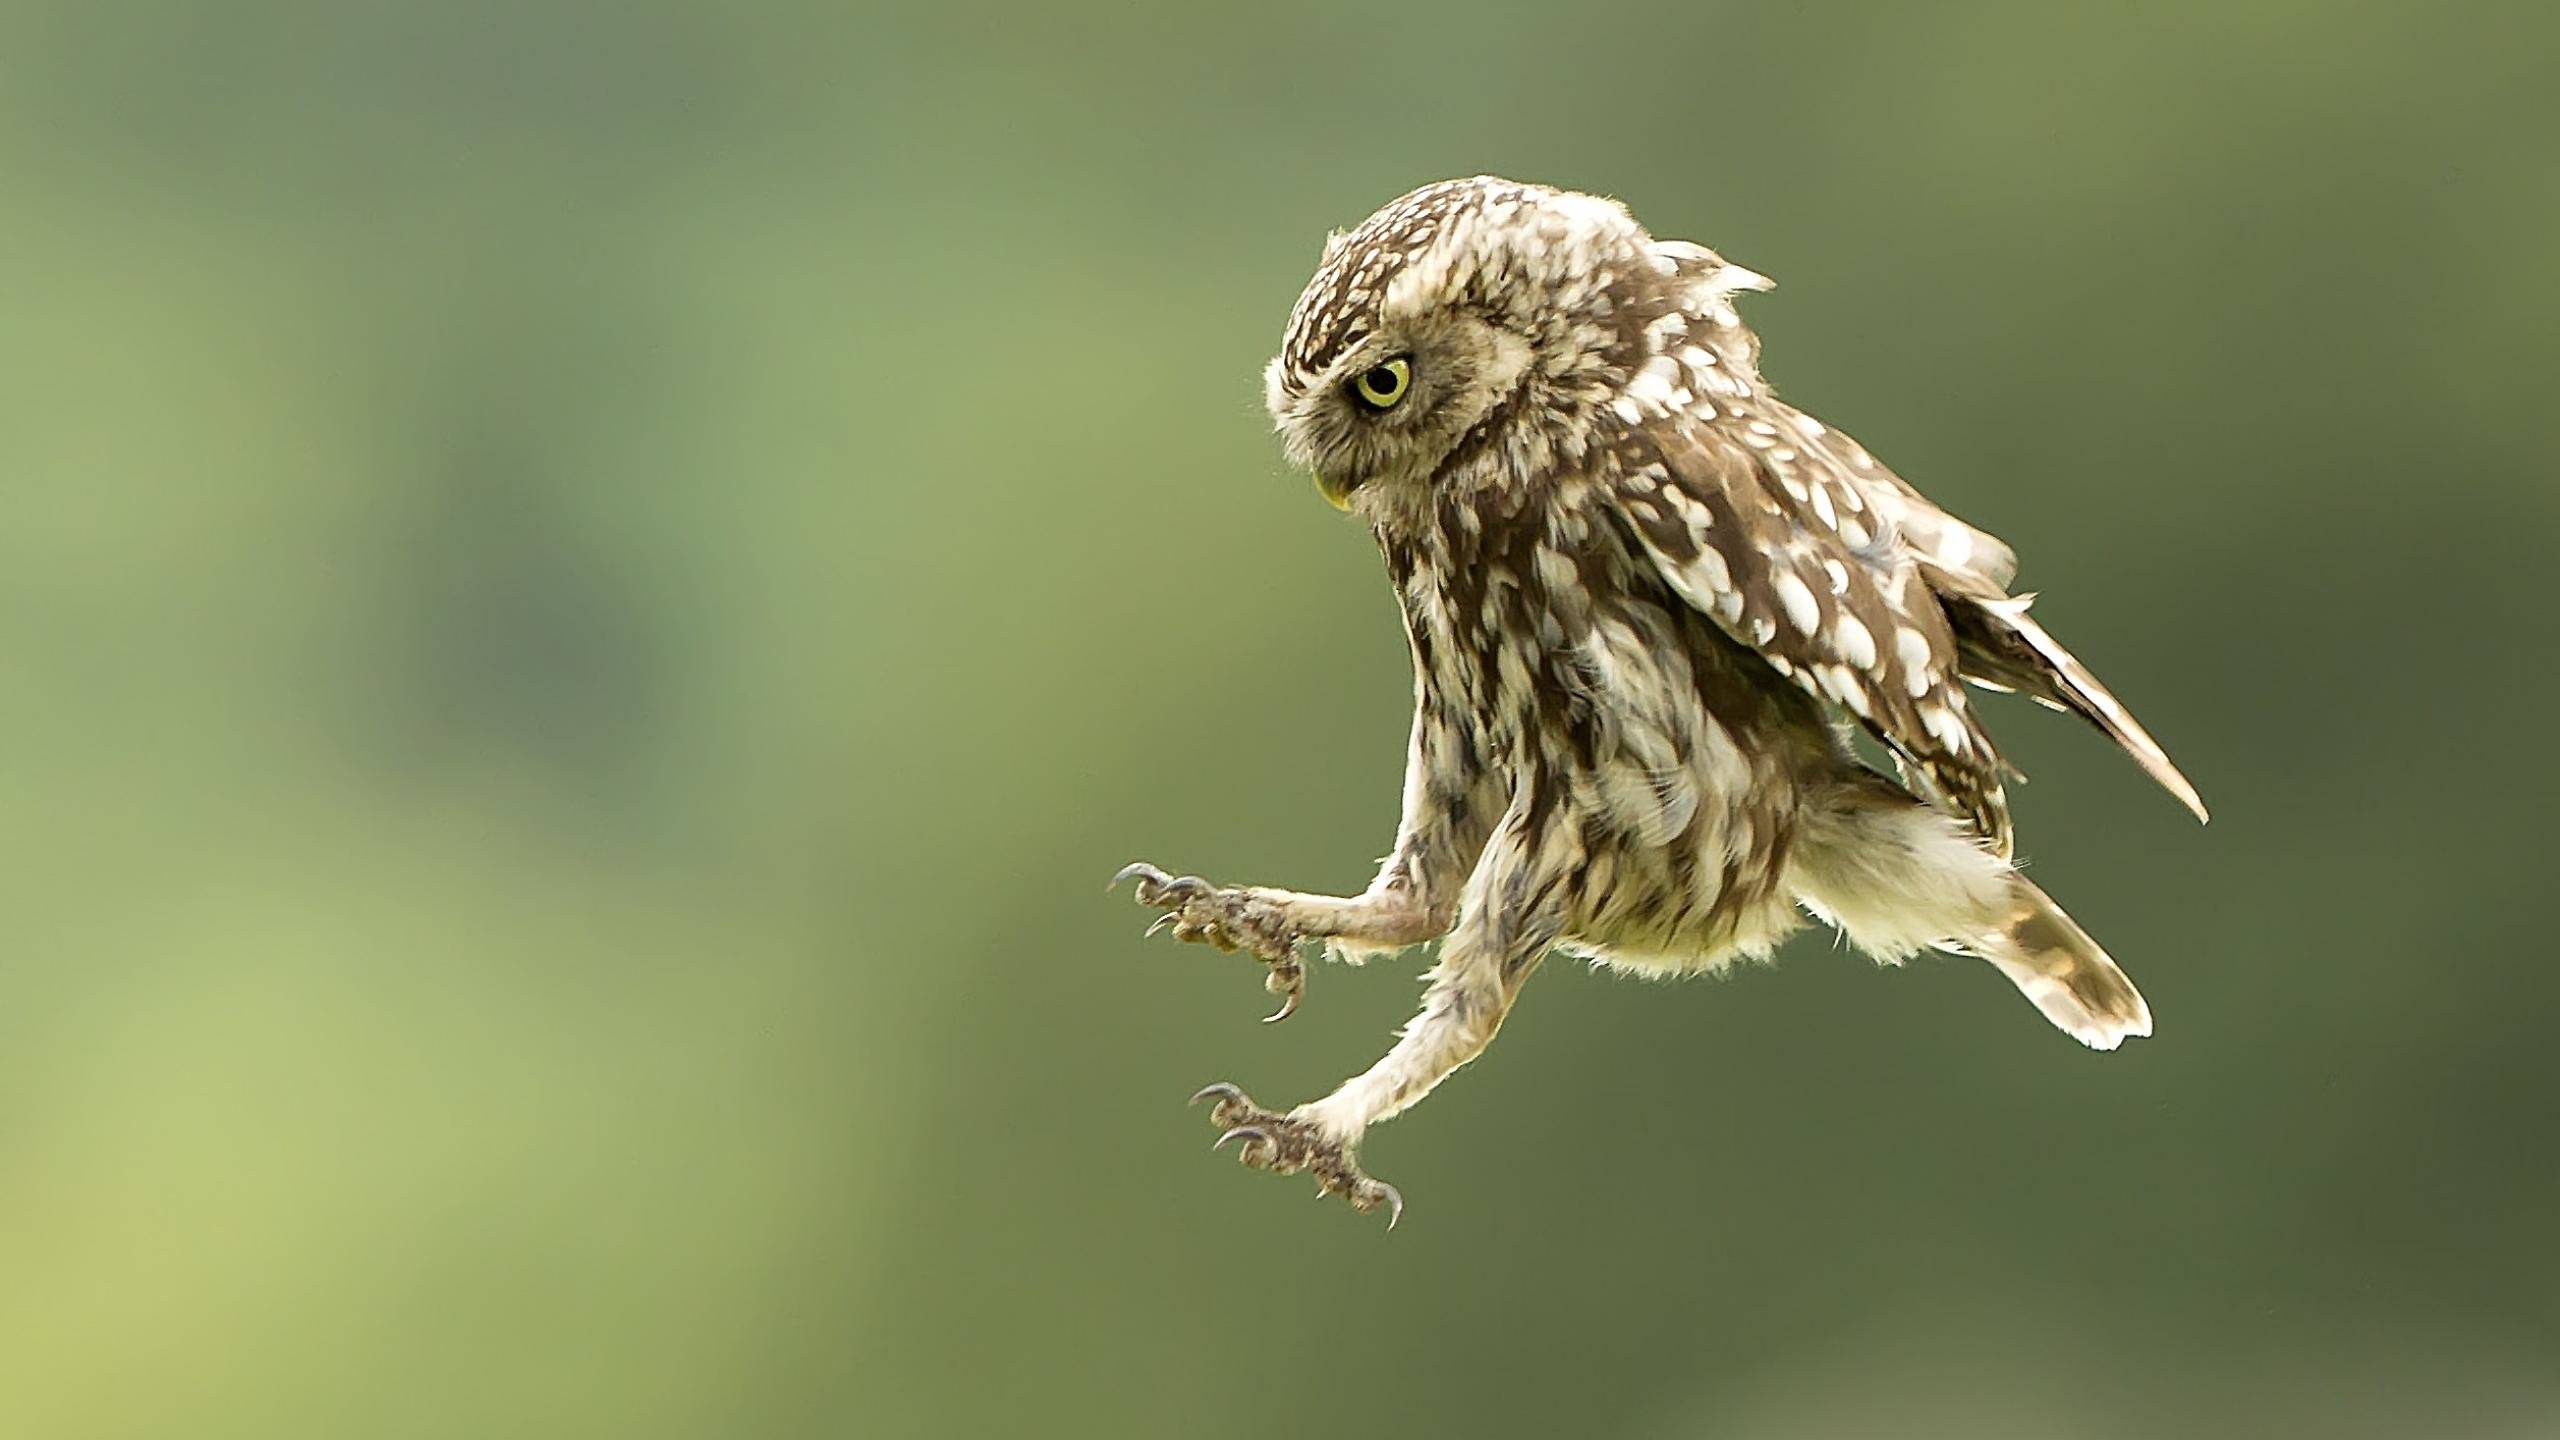 Free Owl high quality wallpaper ID:237224 for hd 2560x1440 computer